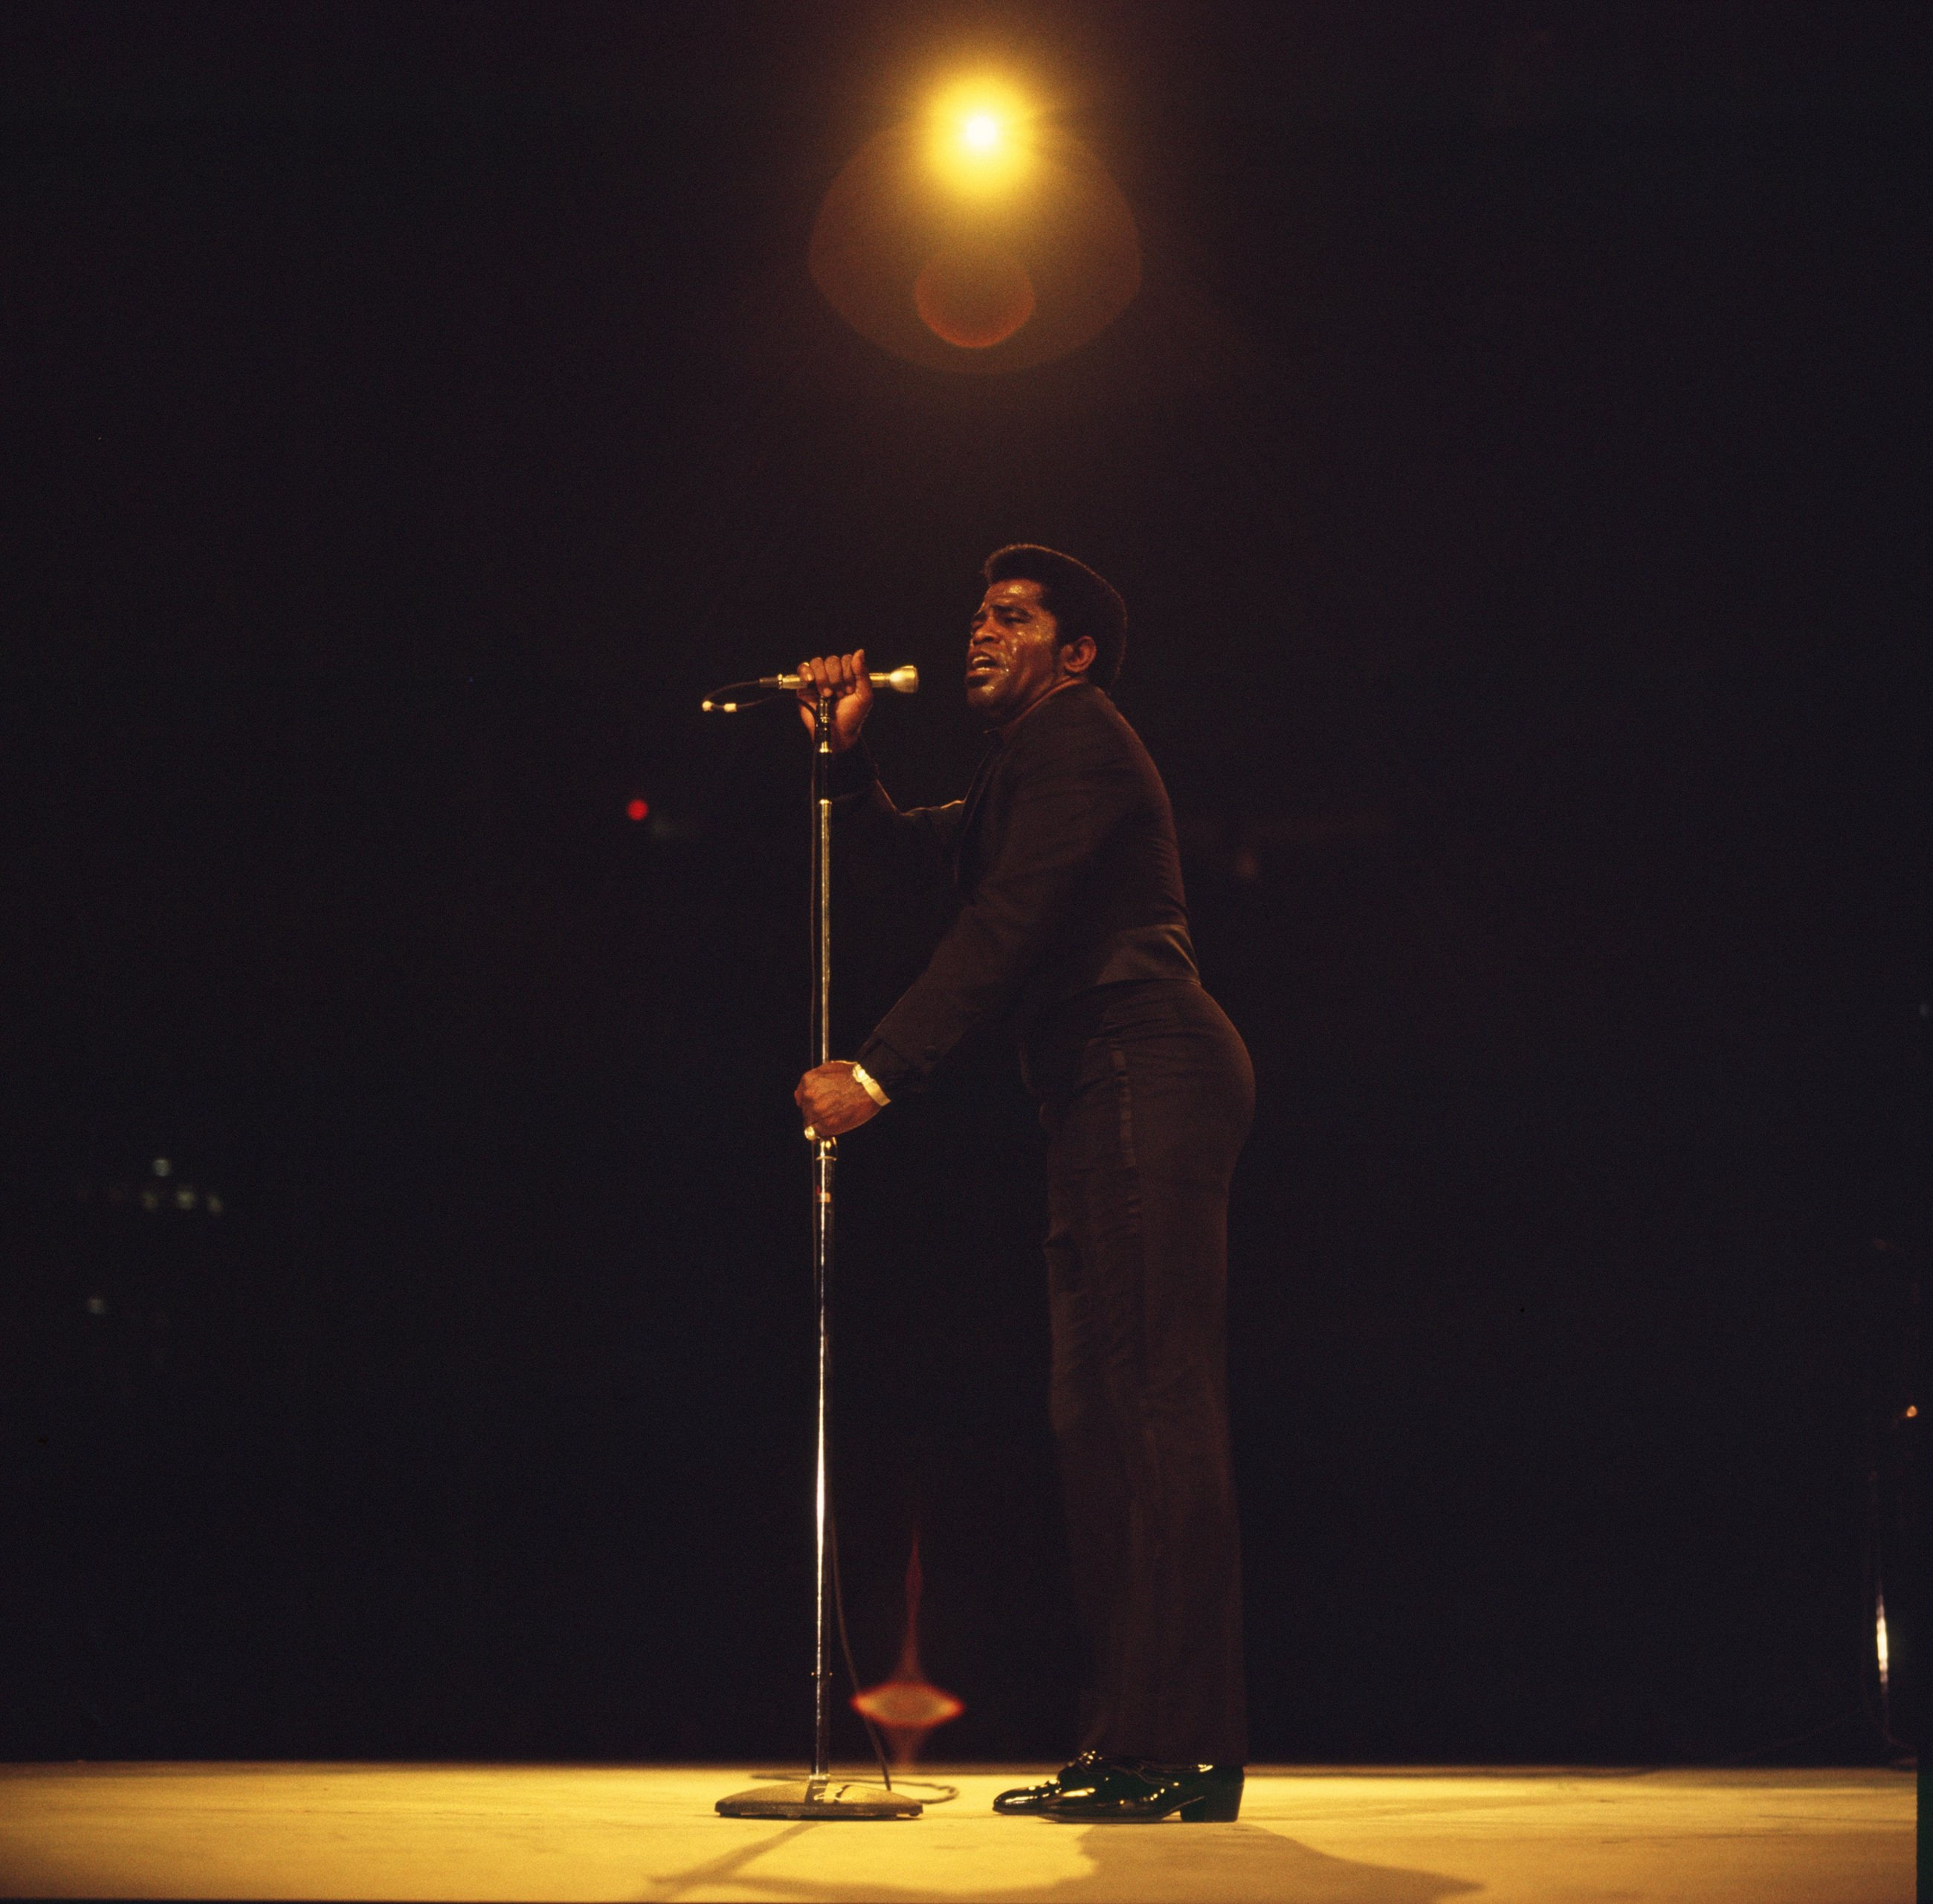 With one raw, irresistible song, James Brown found the sound of the racial unrest of 1967